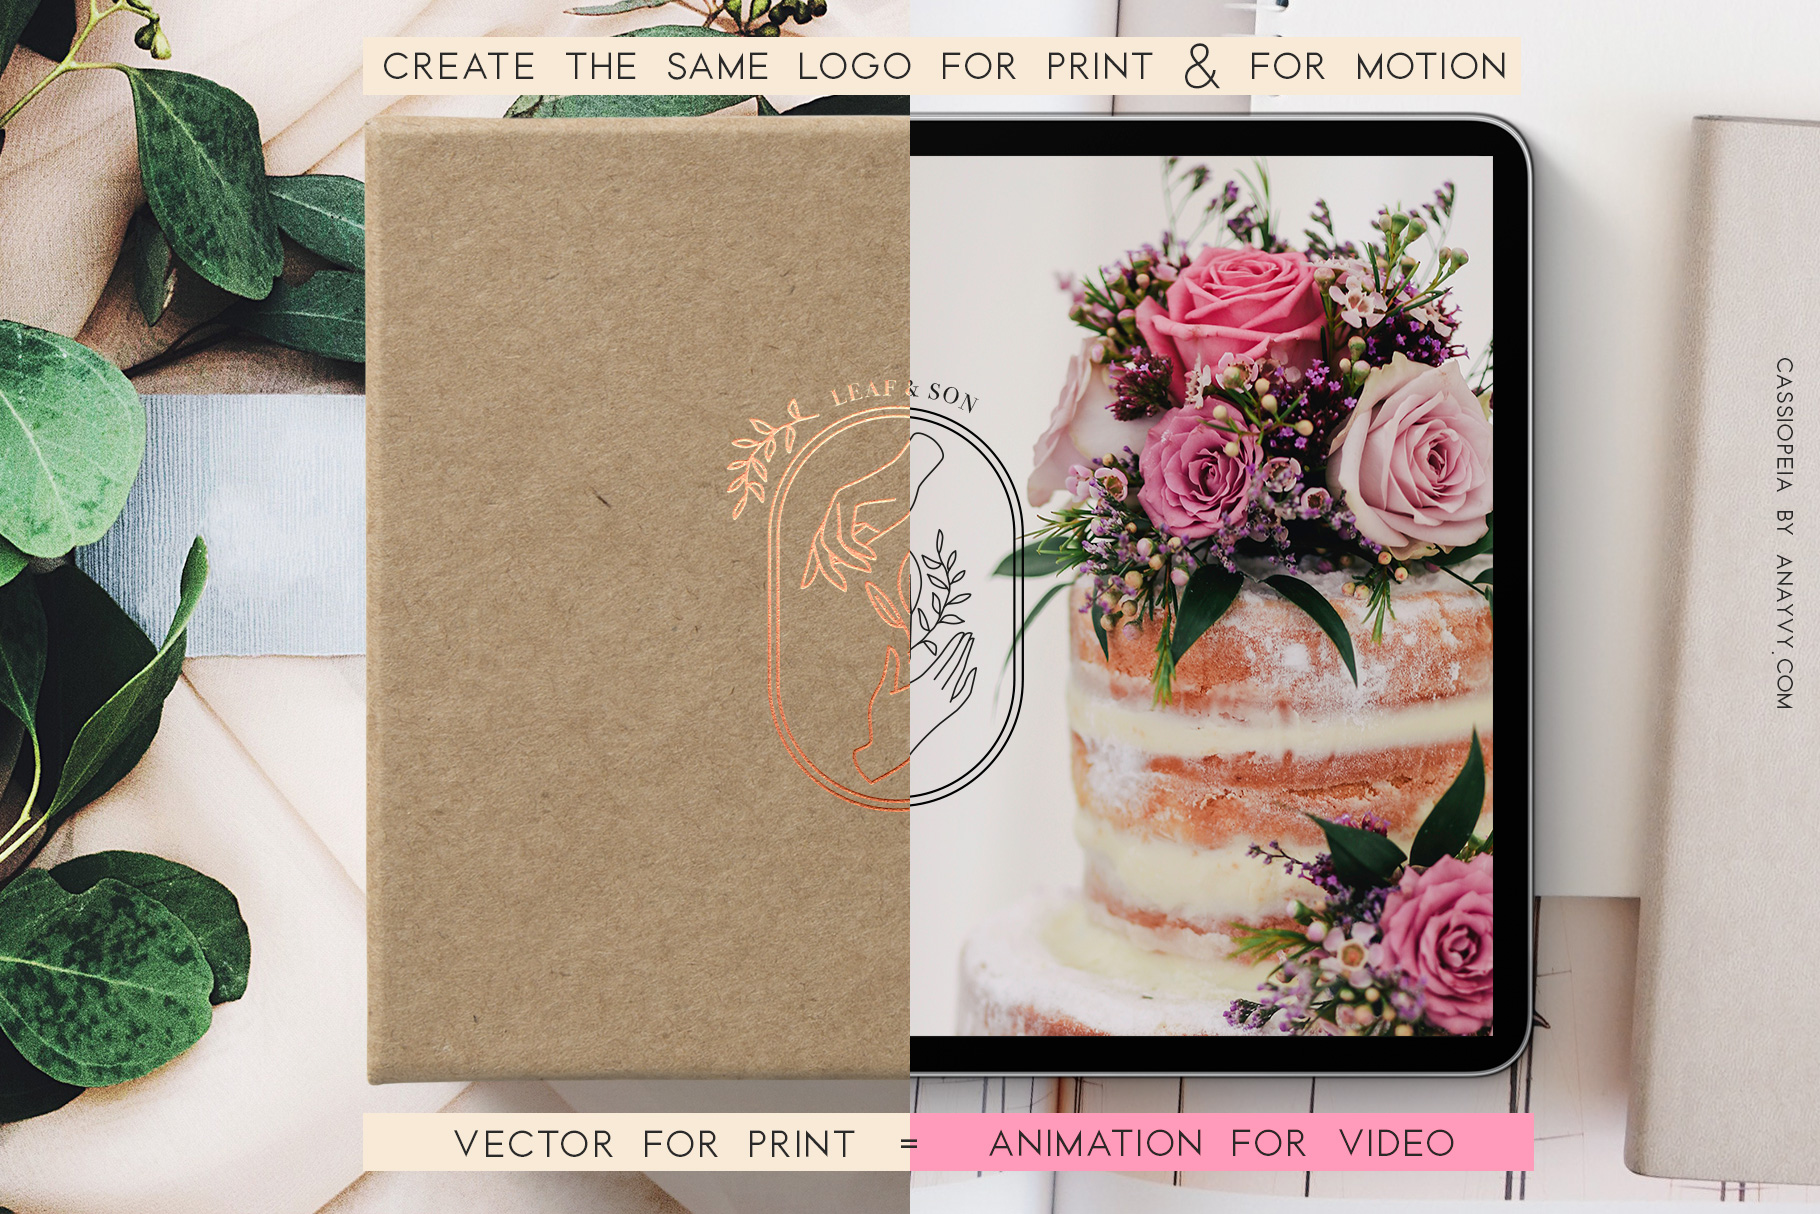 Cassiopeia-logo-design-animation-anayvy-motion-vintage-hand-greenery-apothecary-compare-wedding